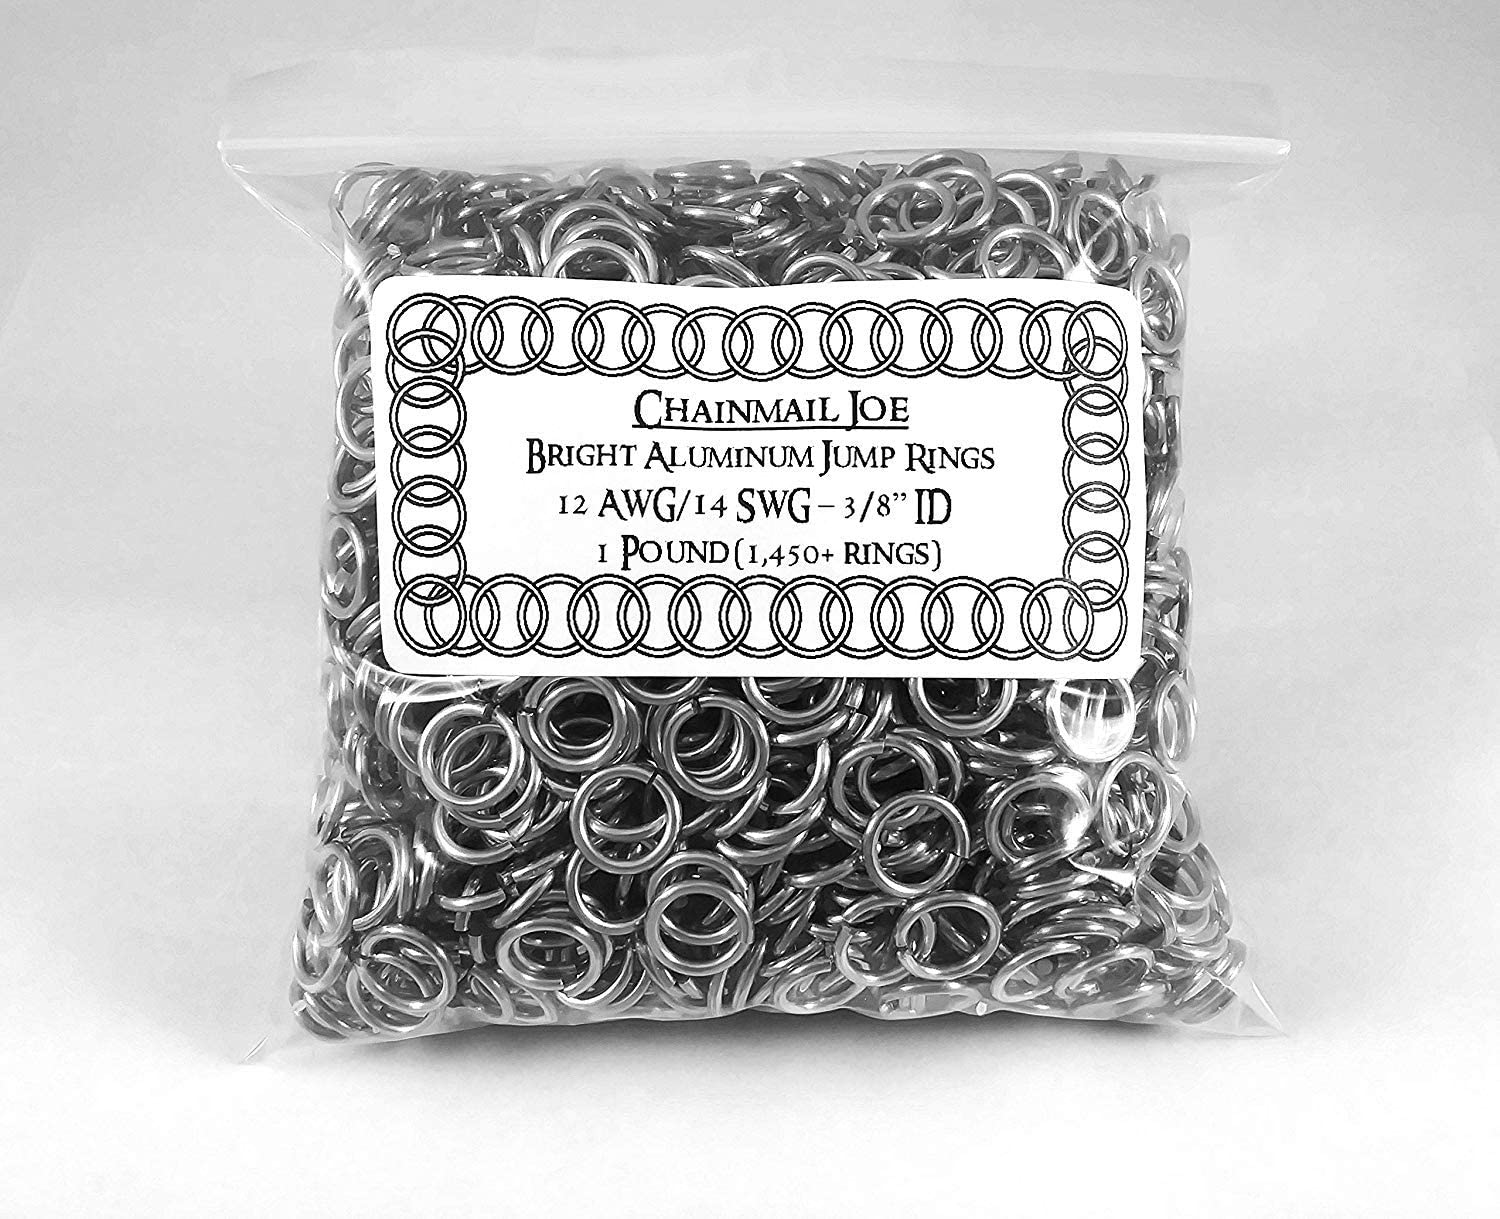 5200+ Rings! 1 Pound Bright Aluminum Chainmail Jump Rings 18G 5//16 ID